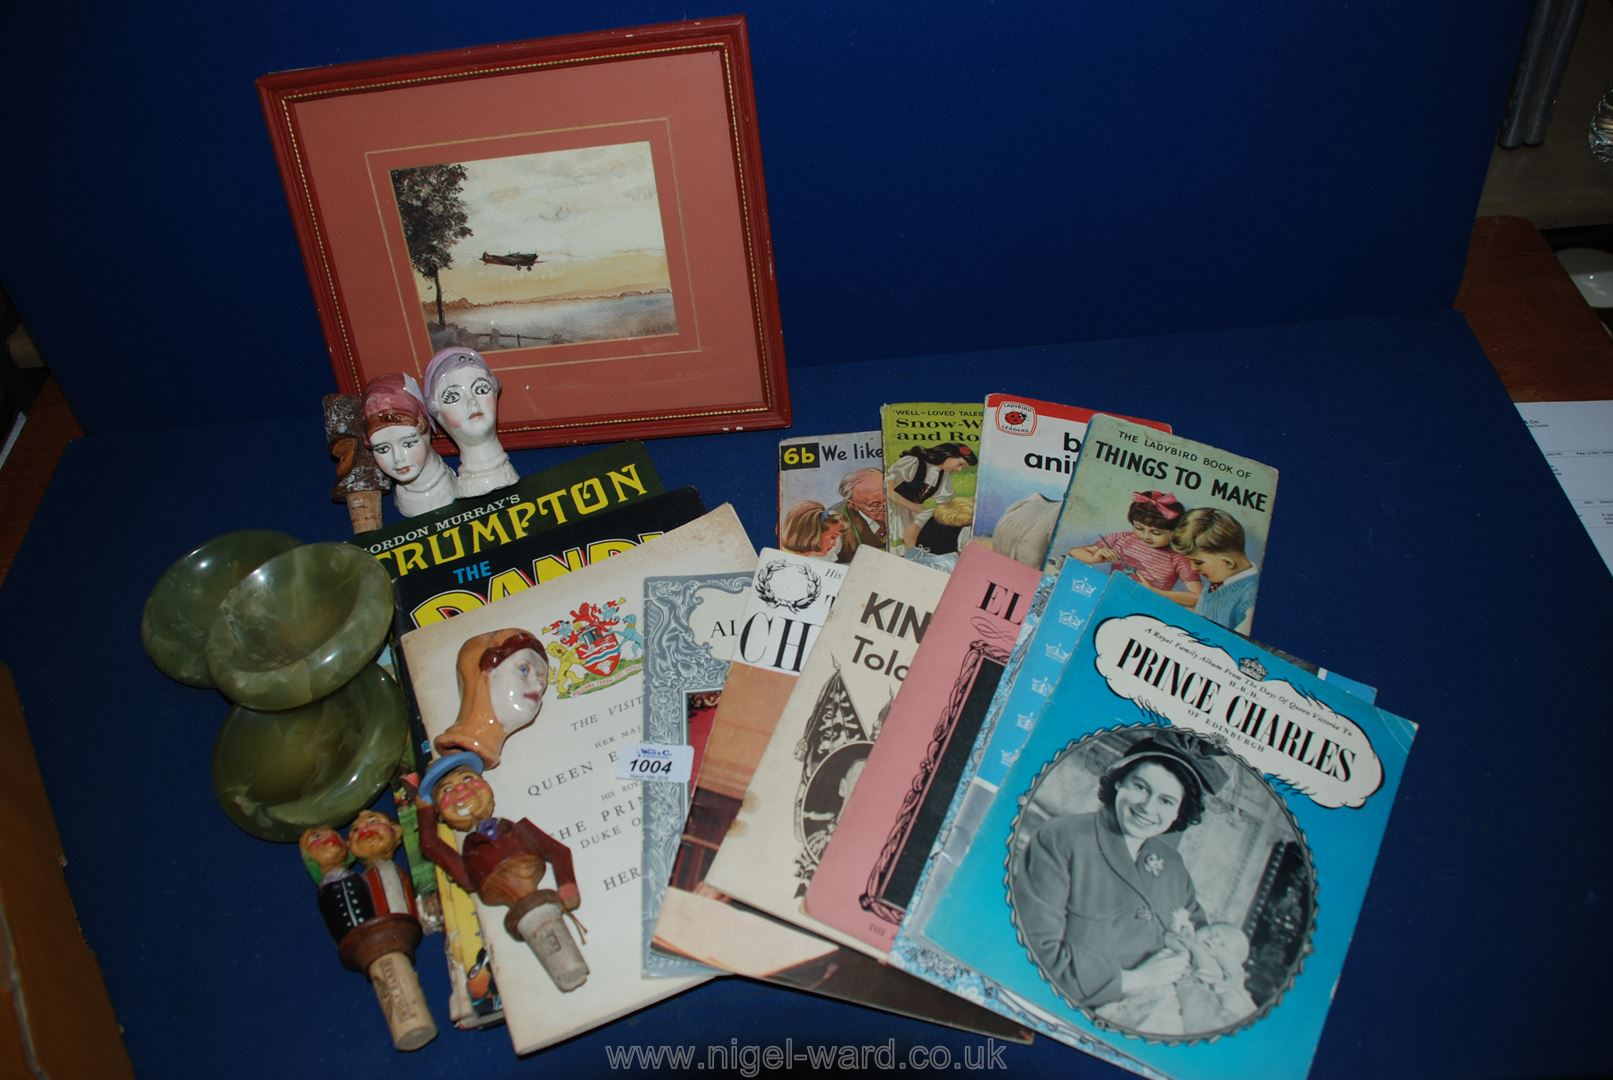 Lot 1004 - A box of Ladybird books, painting of Spitfire, carved bottle stoppers,